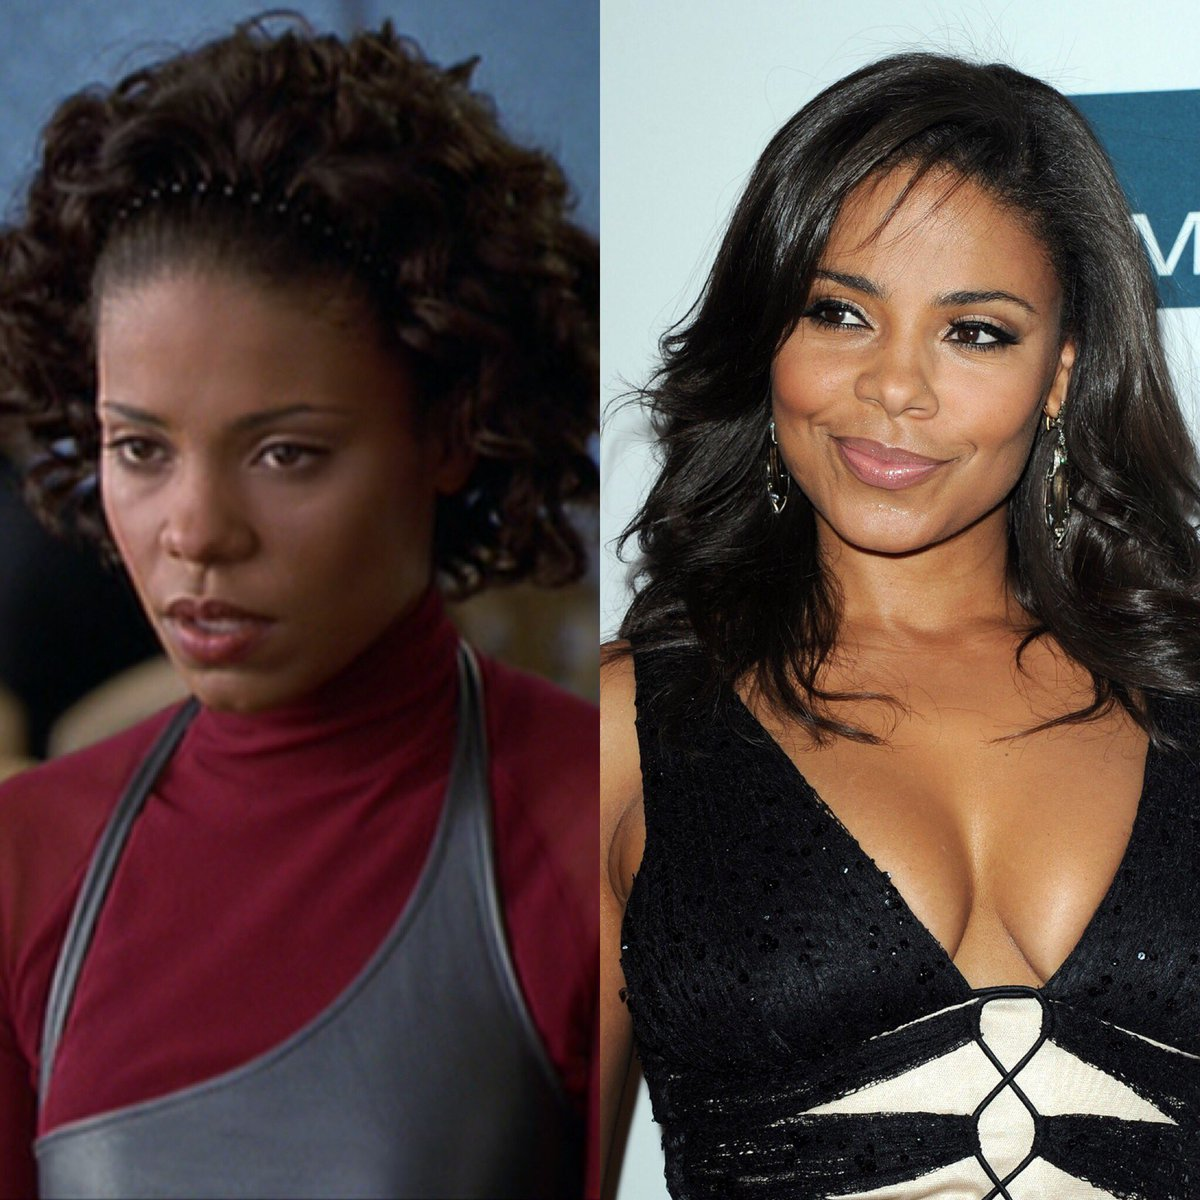 Sanaa Lathan has destroyed all the established beauty standards with her everlasting radiant glow and energy.